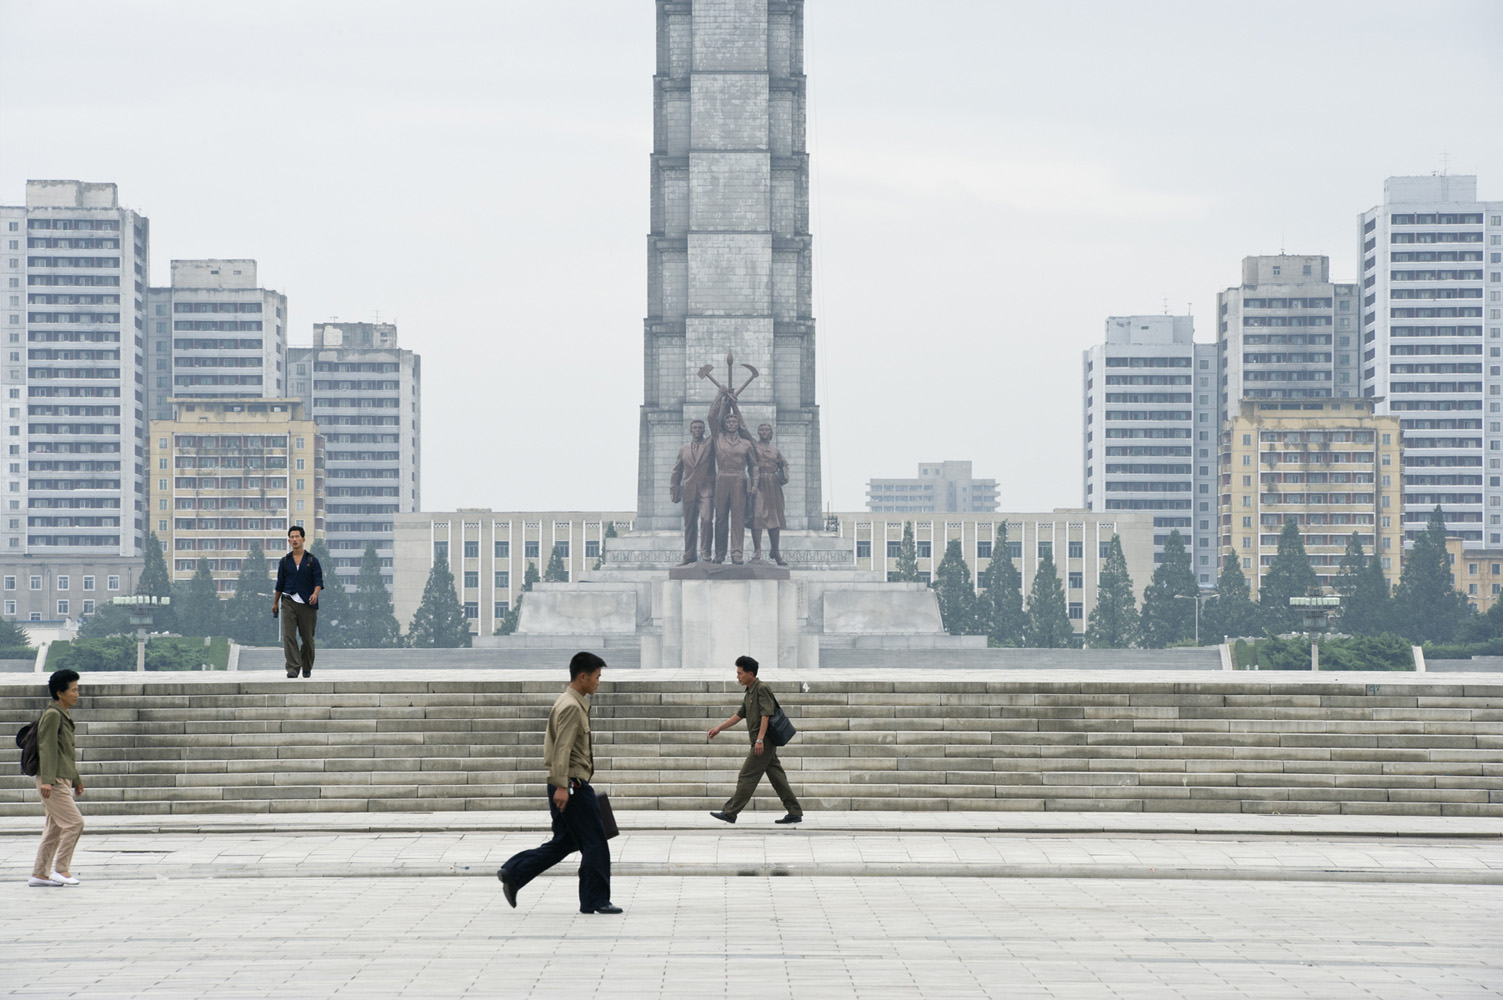 Kim Il-sung Square is a city square in Pyongyang, Democratic People's Republic of Korea, and is named after the founding leader of the DPRK, Kim Il-sung. Opened in August 1954, the square is located on the west bank of the Taedong River, directly opposite the Juche Tower on the other side of the river. The square is a common gathering place for rallies, dances and military parades and is often featured in media concerning North Korea. It is the 16th largest square in the world, having an area of about 75,000 square meters (807,293 square feet) which can accommodate a rally of more than 100,000 people.